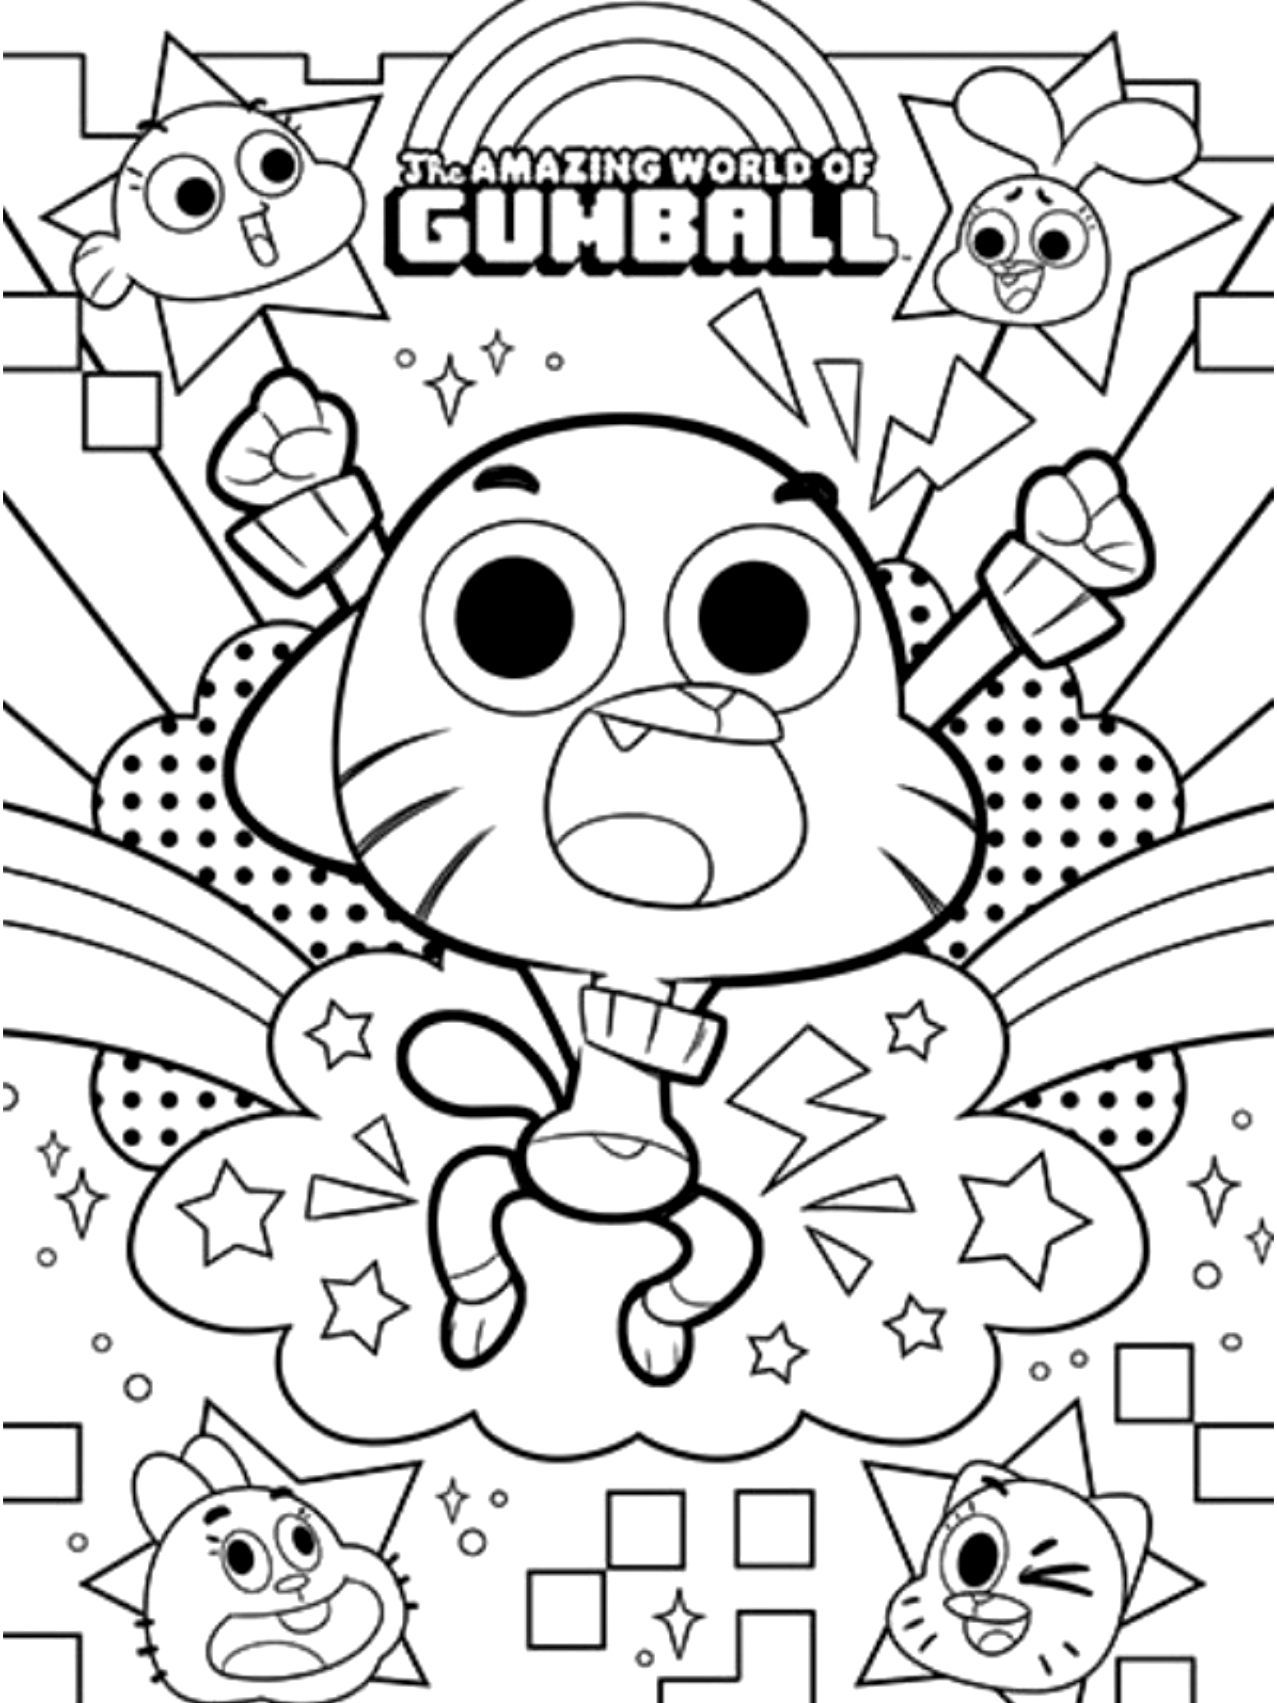 Pin By Ben Hammouda Raoudha On Coloring Pages The Amazing World Of Gumball World Of Gumball Birthday Coloring Pages